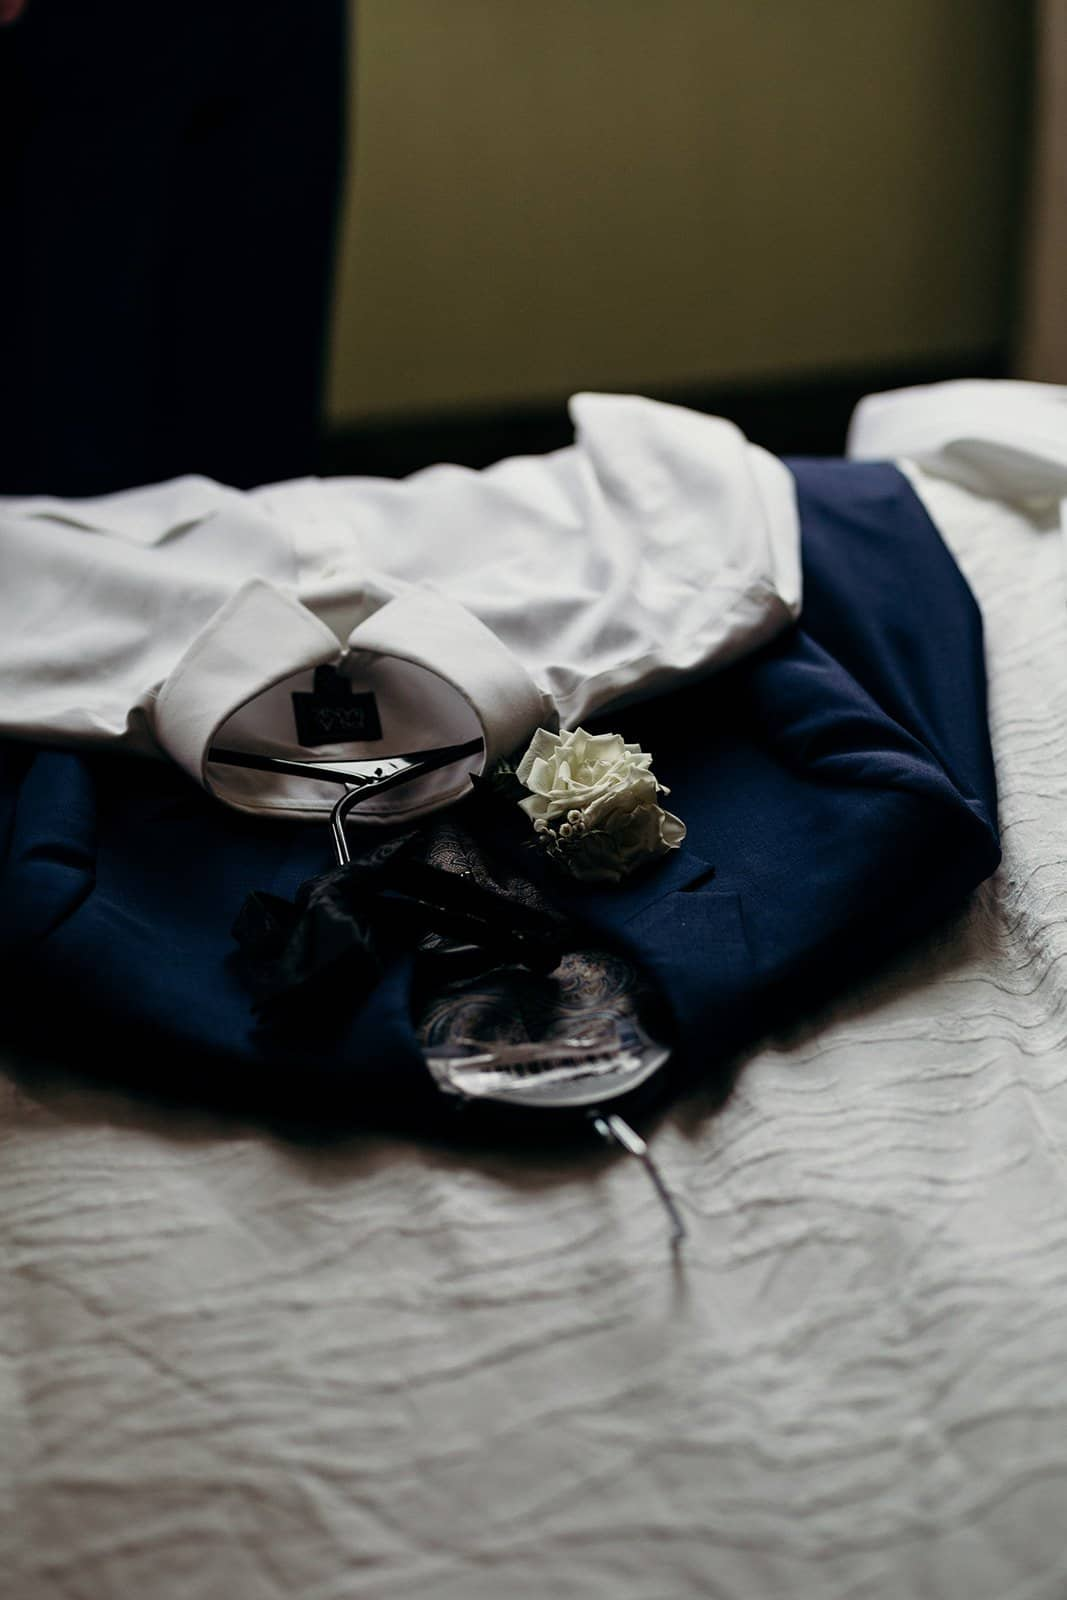 White shirt and jacket on bed